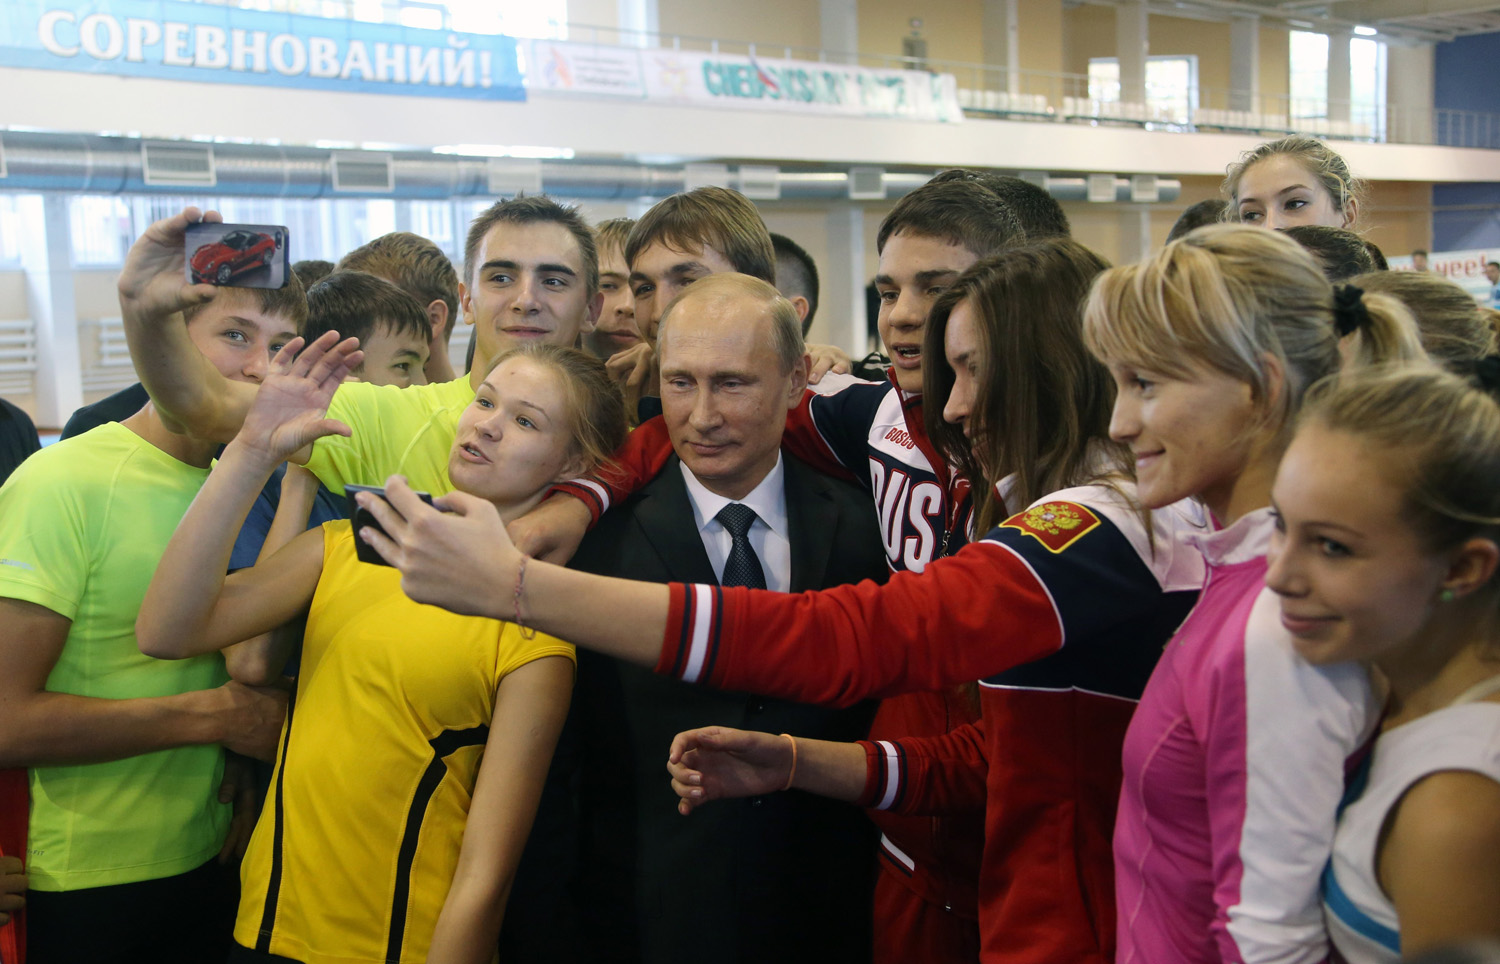 Russian President Vladimir Putin poses for a photo surrounded by teenage athletes as he attends a meeting with officials, ministers and governors on sport development in Cheboksary, Russia on Oct. 9, 2014.